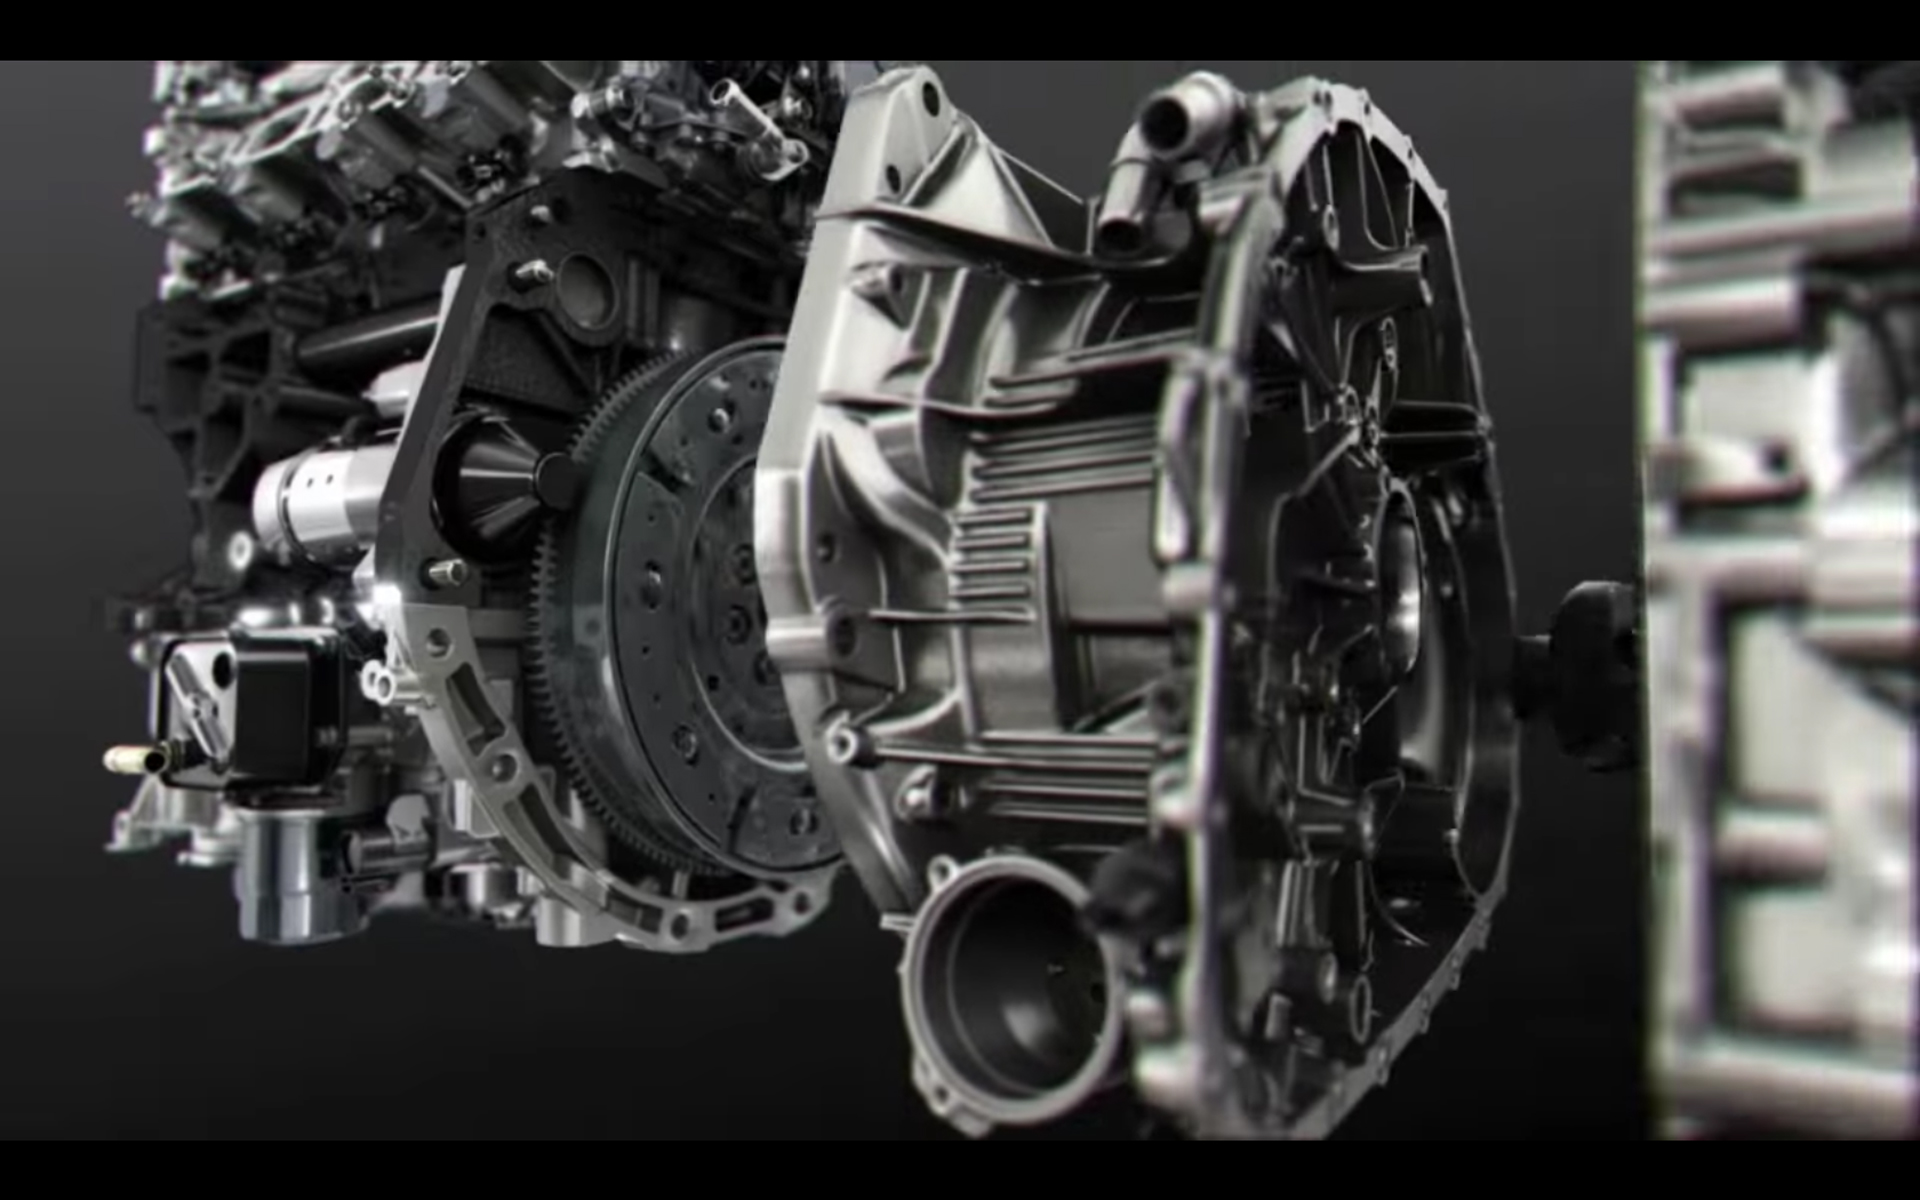 Renault - 1.8L TCe - engine / moteur - inside preview